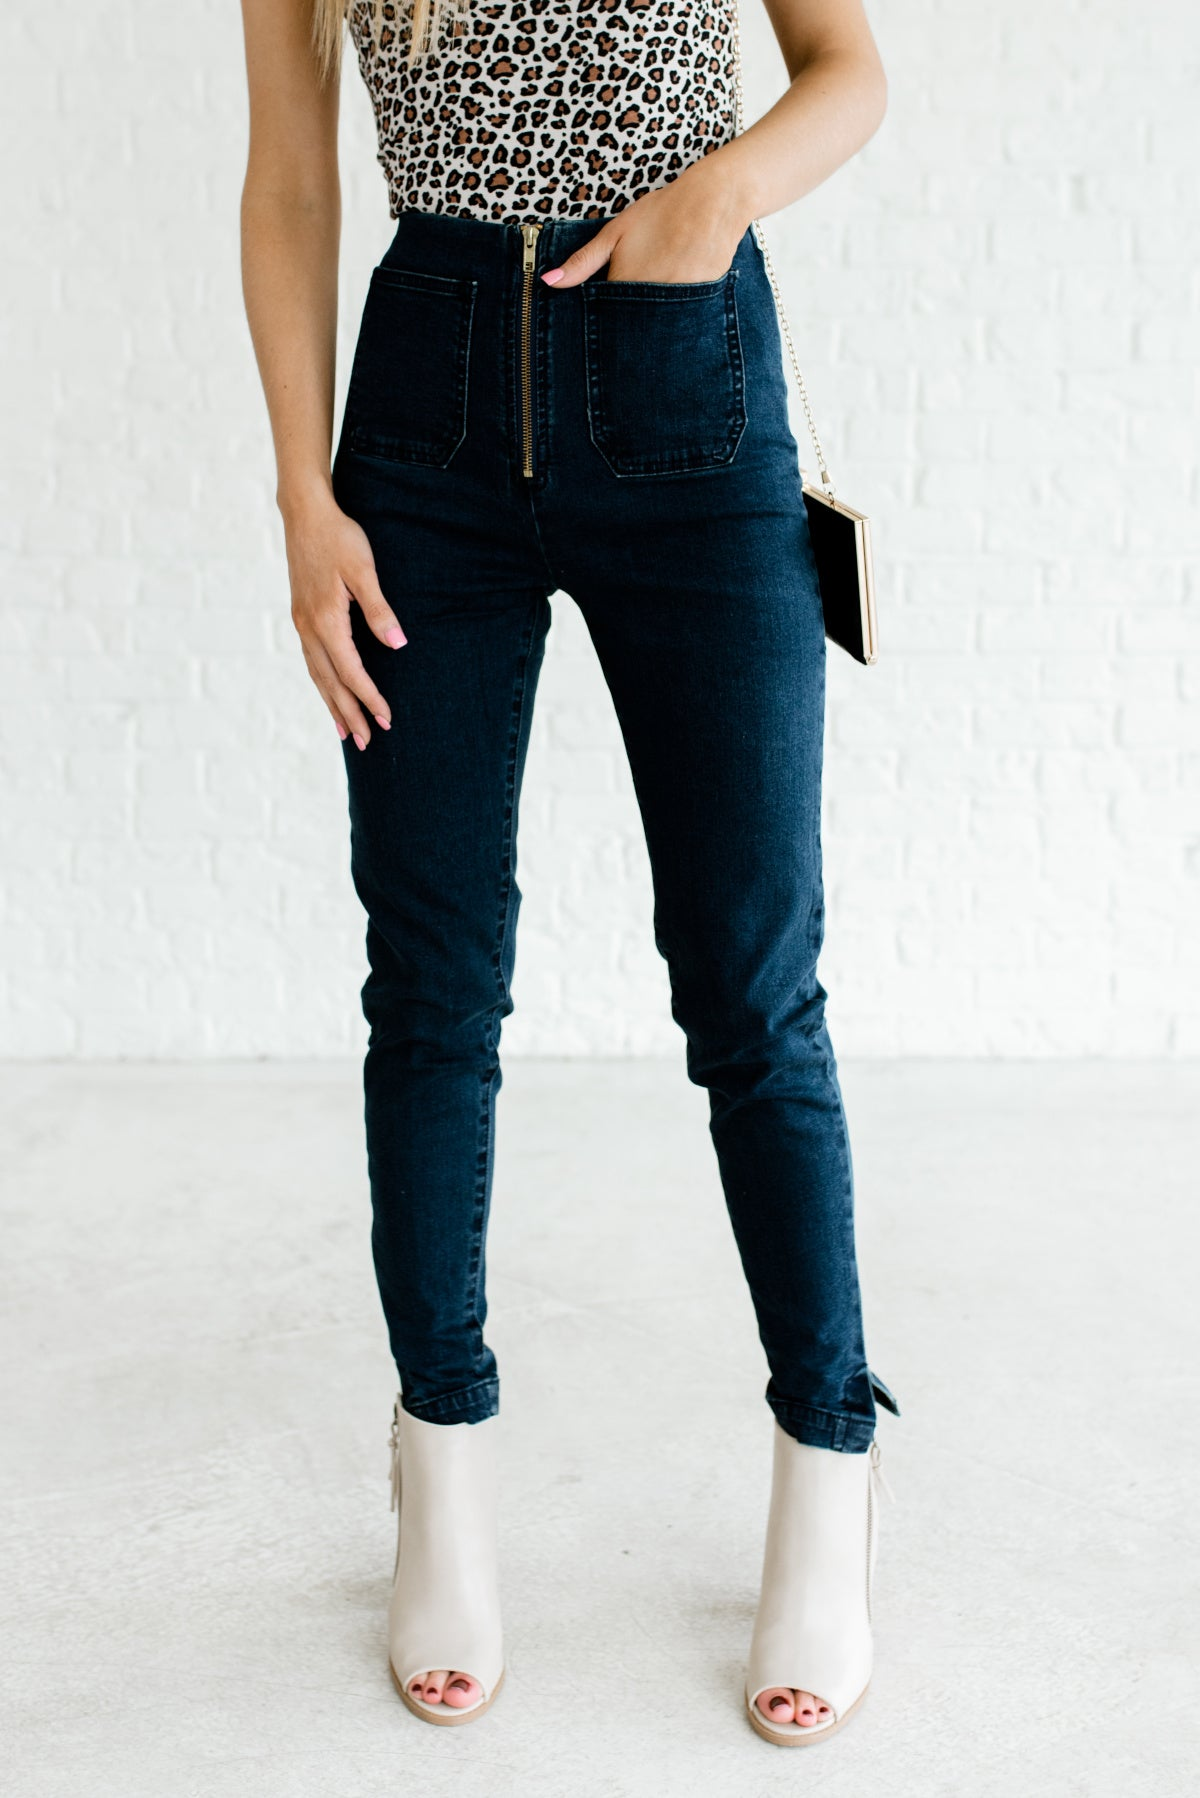 Dark Wash Denim Blue Skinny Style Boutique Jeans for Women